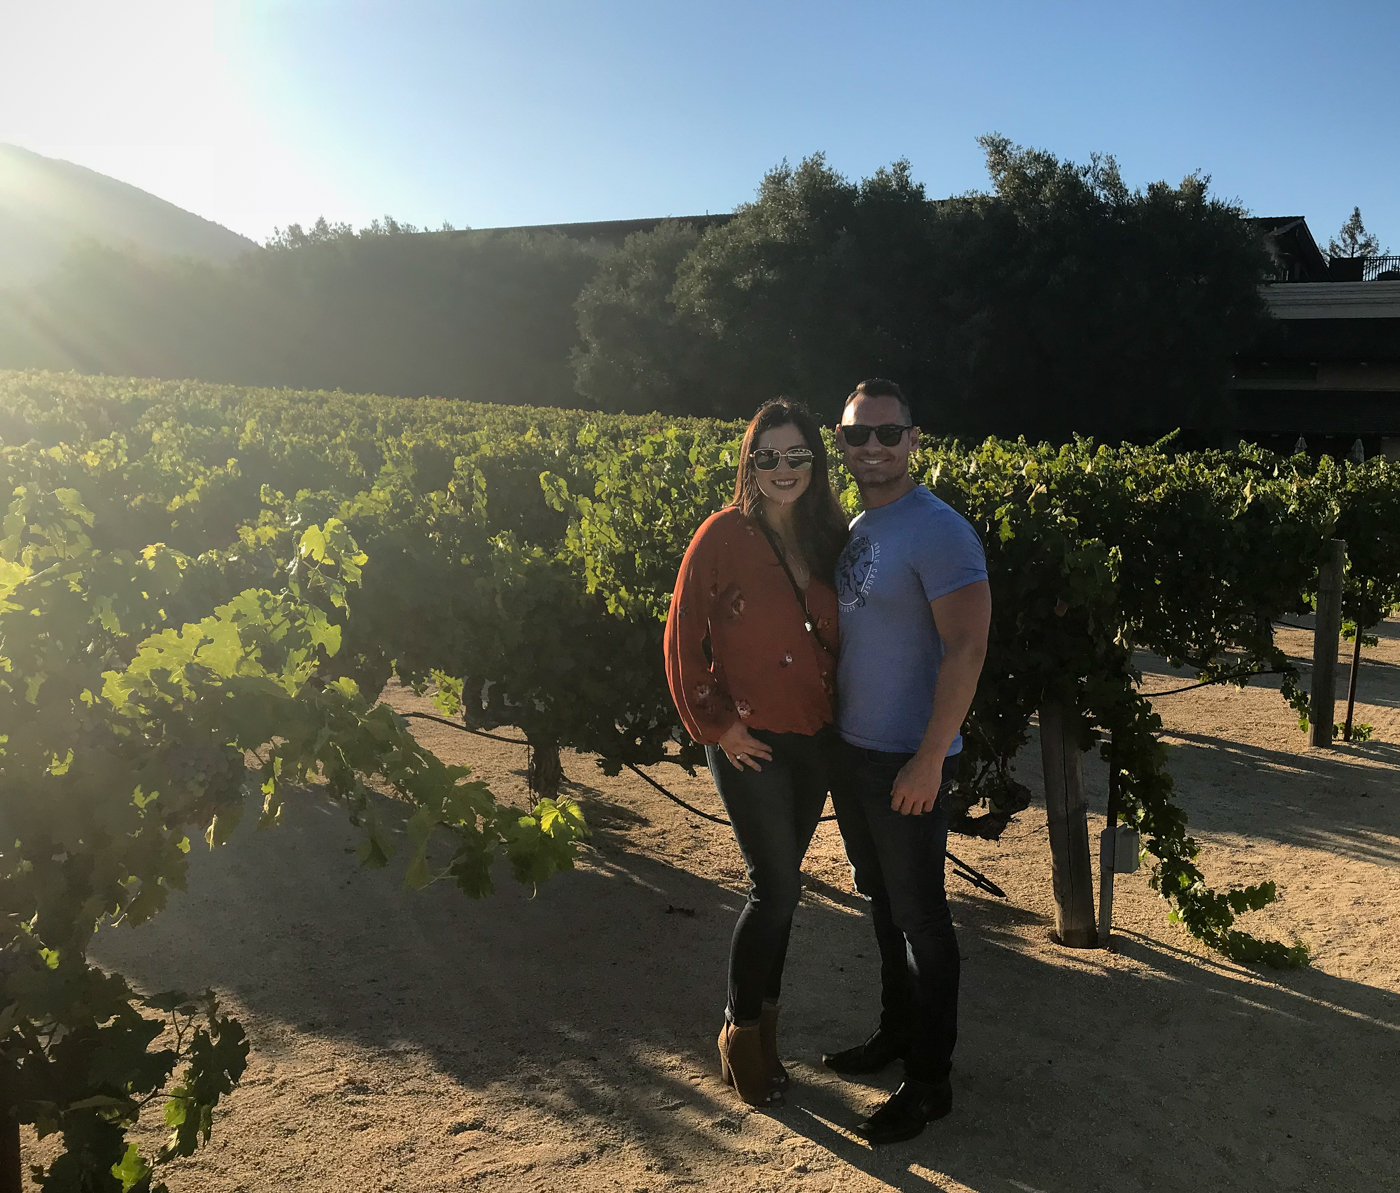 Tips for Visiting Napa Valley